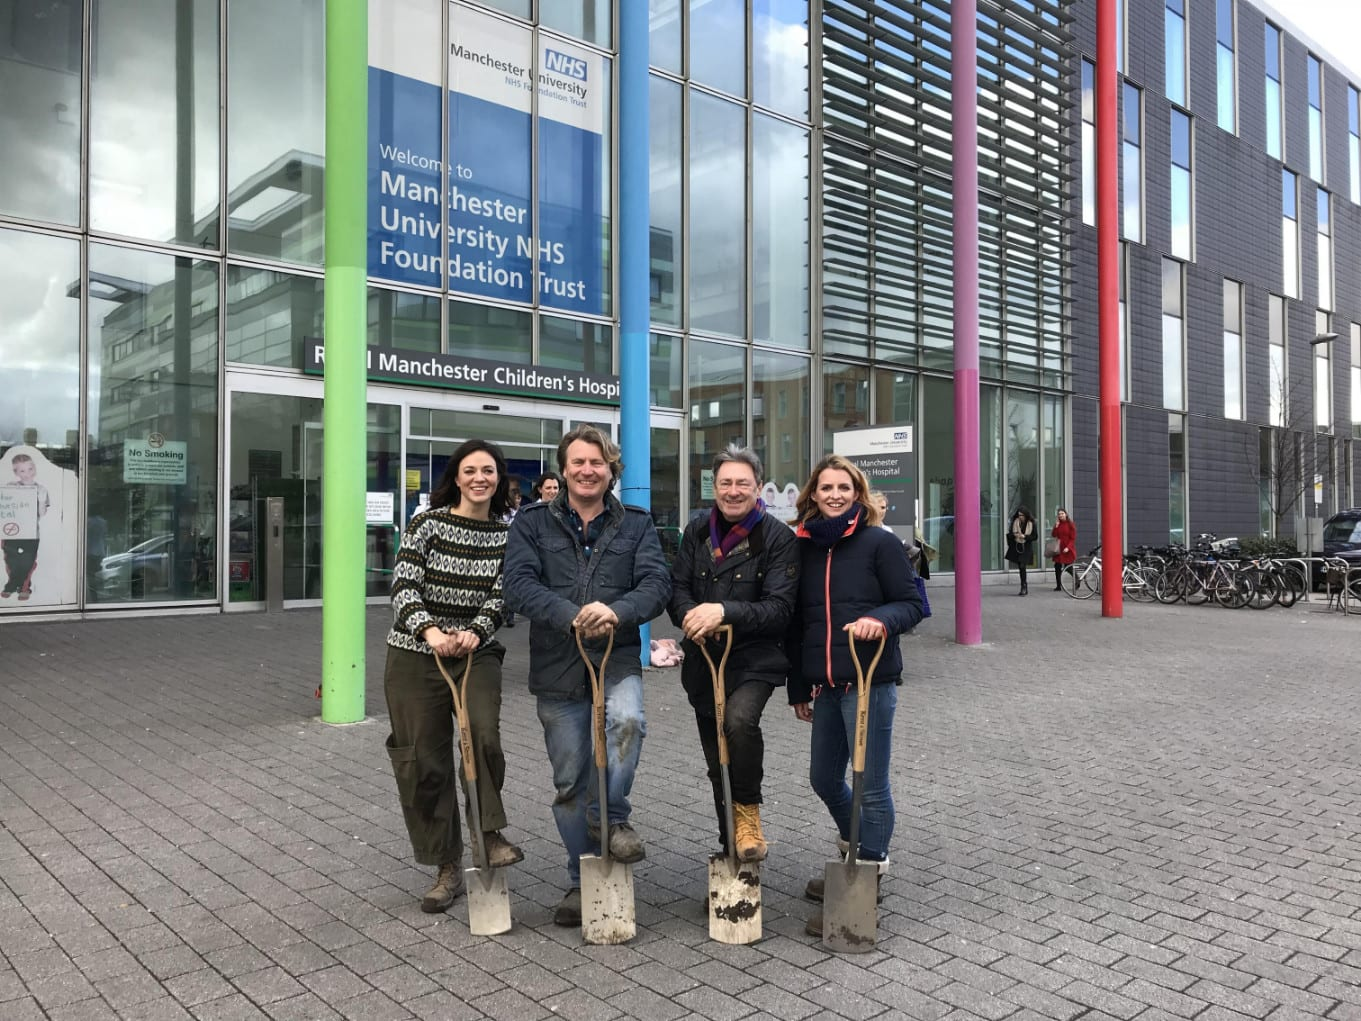 Frances, Alan, Katie and I outside the amazing hospital in Manchester.